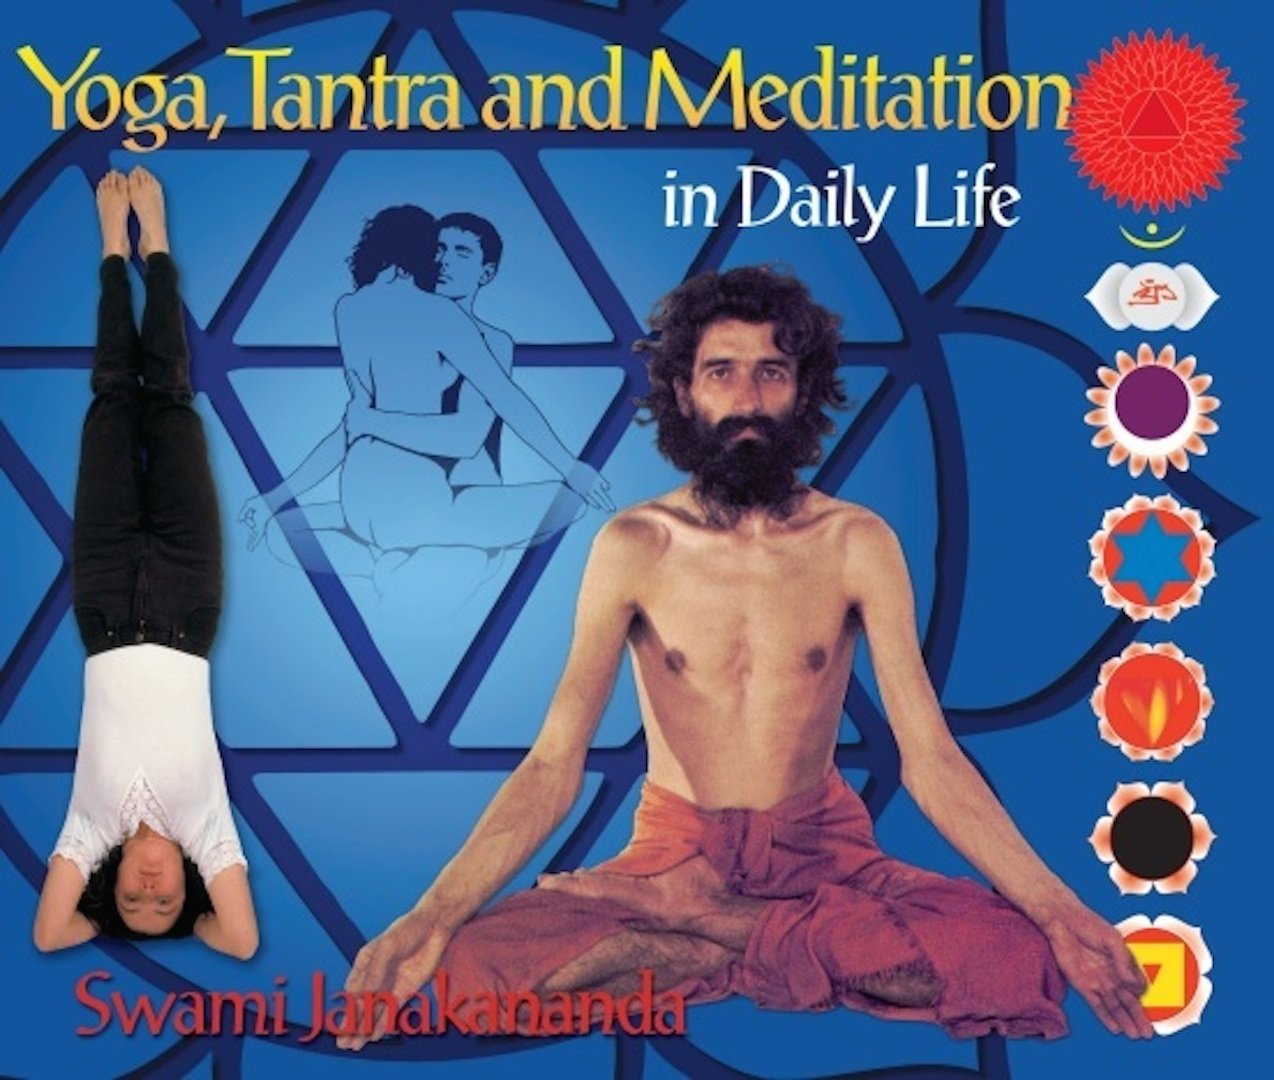 Yoga, Tantra and Meditation in Daily Life: Amazon.es: Swami ...